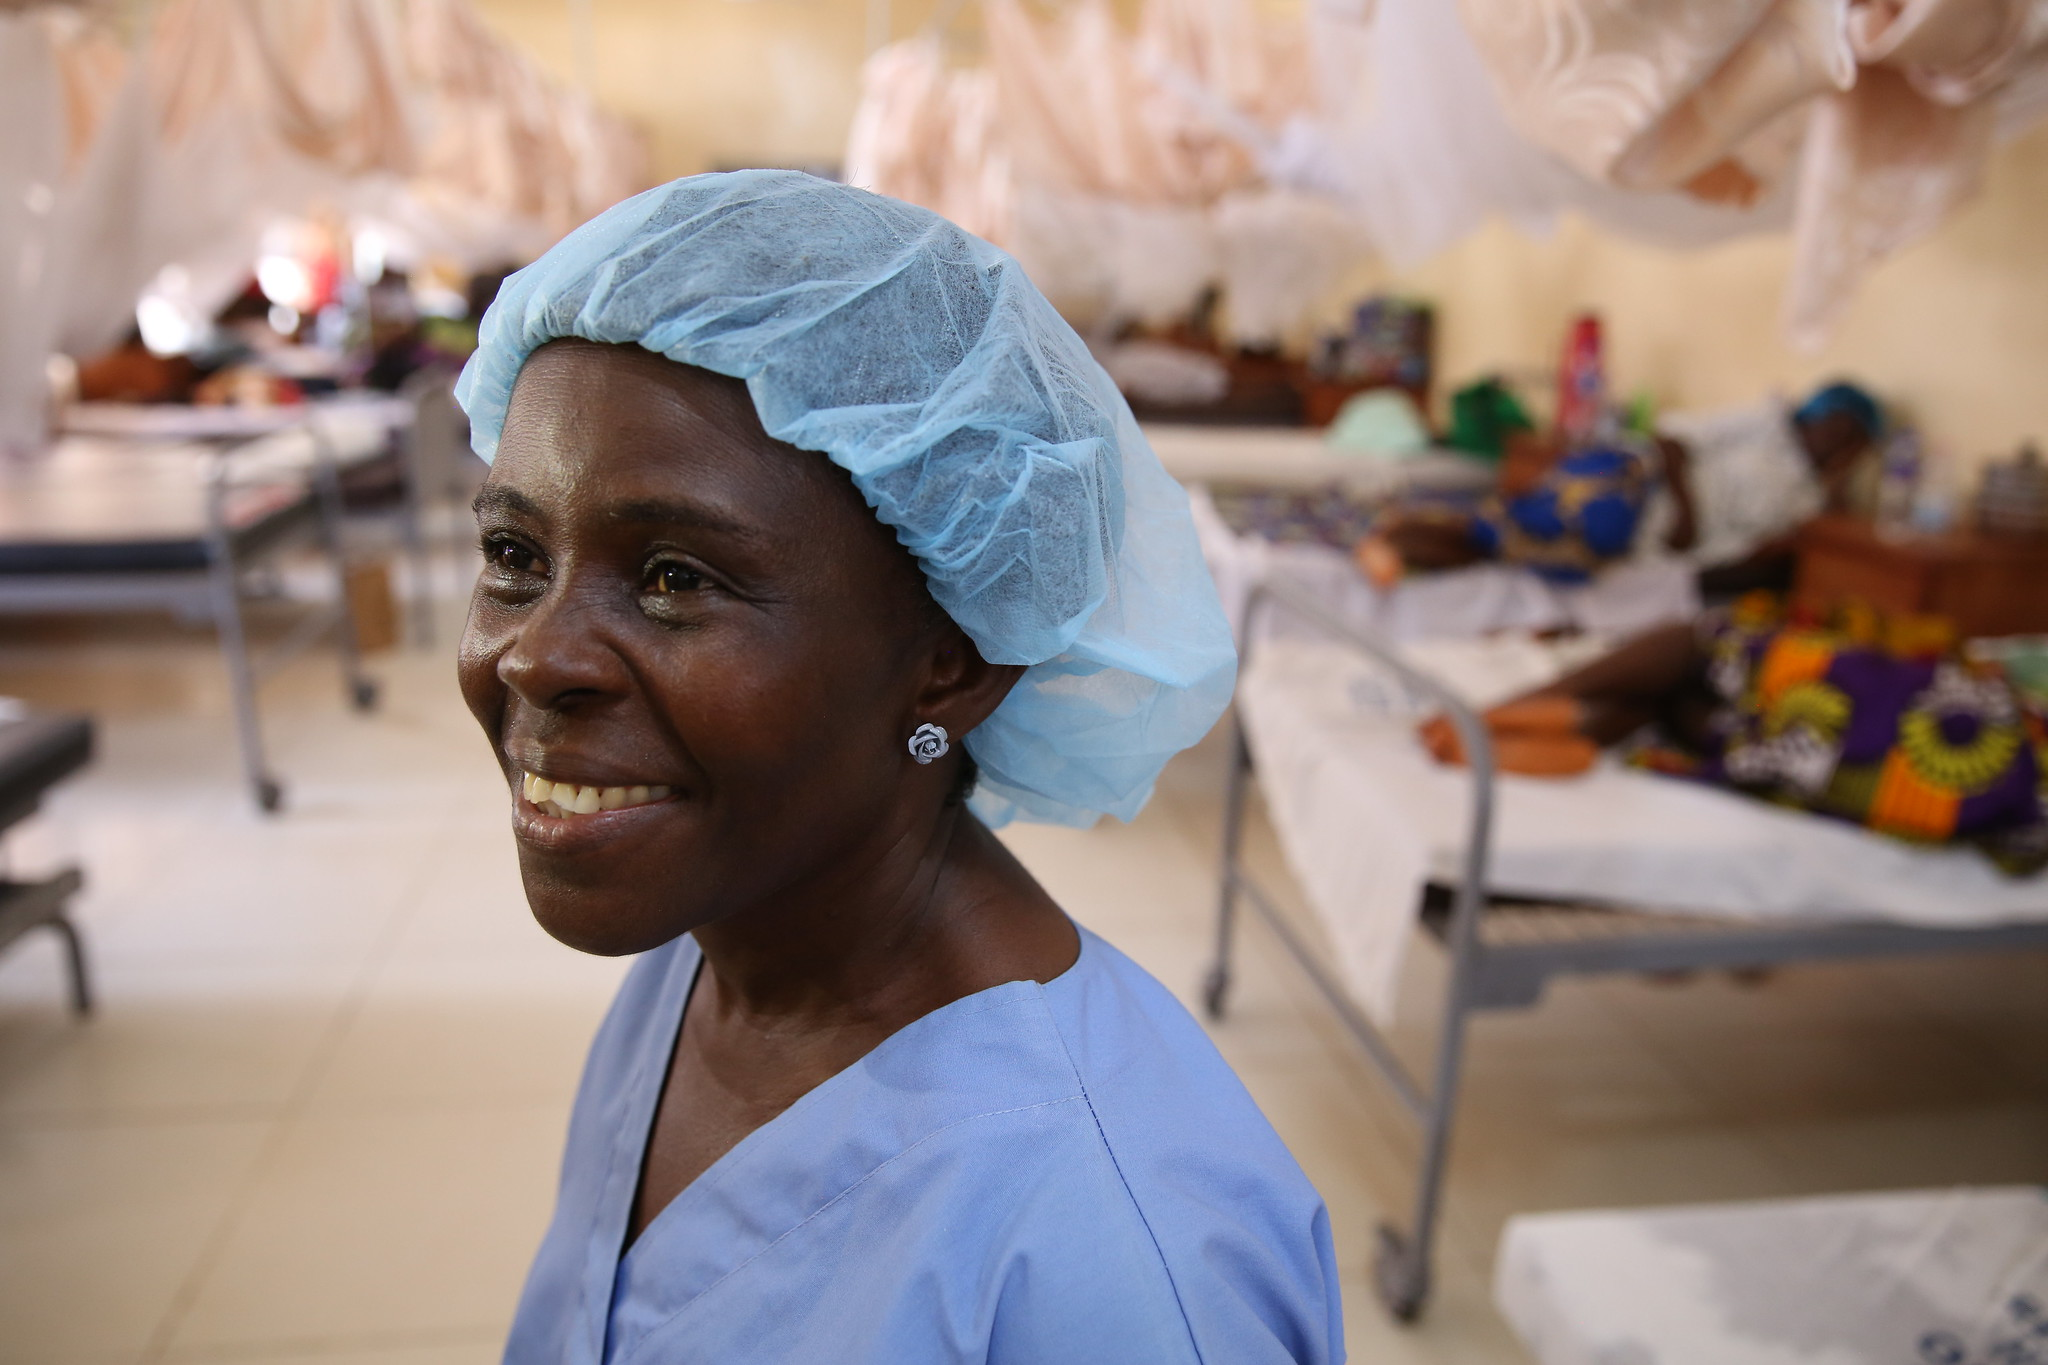 A midwife at Redemption Hospital in Monrovia, Liberia, 2015. Photo © Dominic Chavez/World Bank/CC